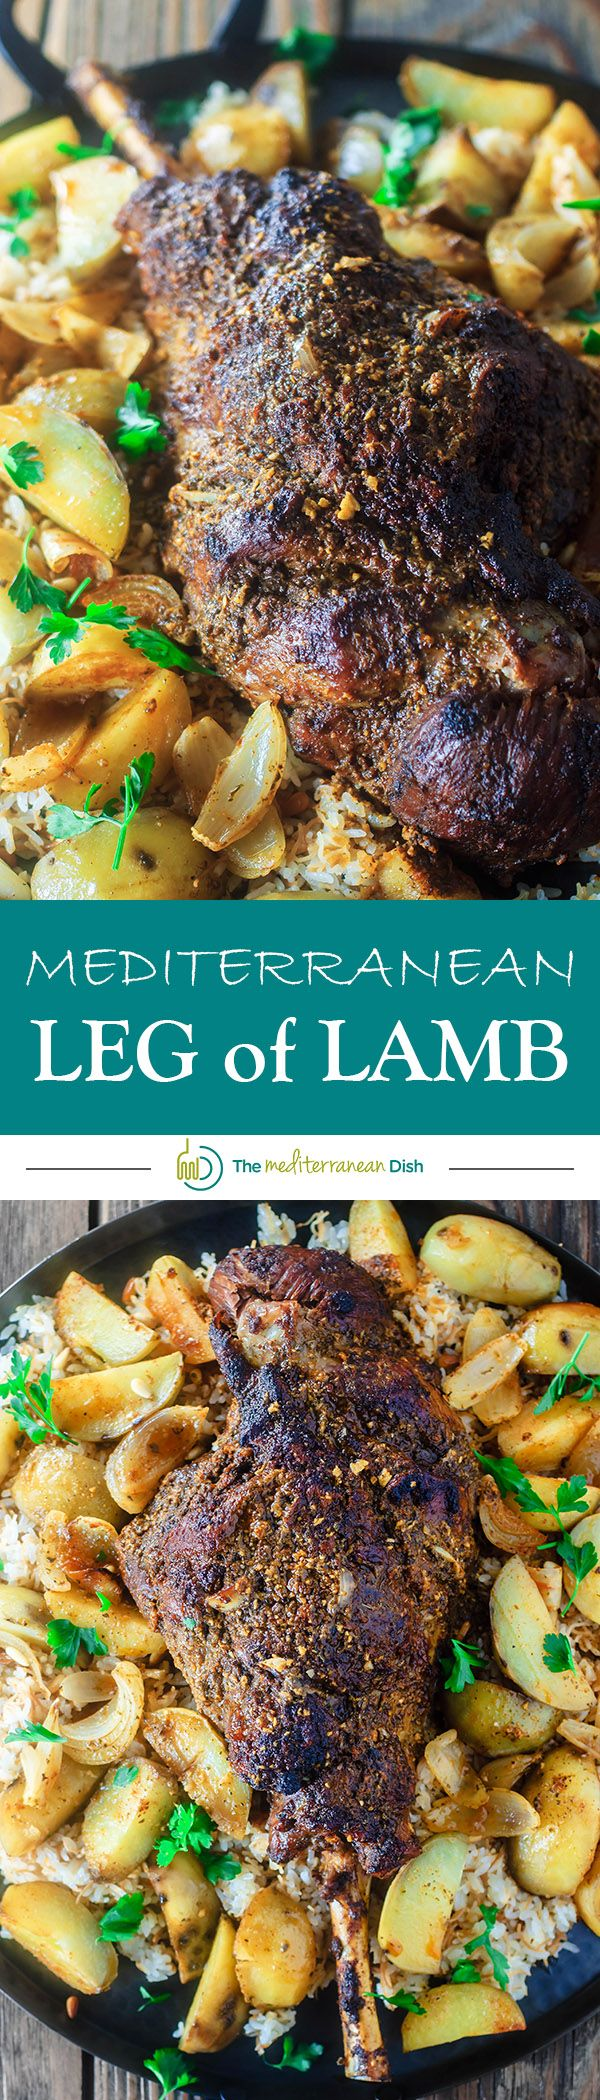 Mediterranean-style Leg of Lamb Recipe | The Mediterranean Dish. Leg of lamb covered in a Mediterranean rub of fresh garlic, spices, olive oil and lemon juice. Roasted with potato wedges and served over rice pilaf. A delicious Easter recipe or for your next family dinner! Recipe comes with step-by-step photos!